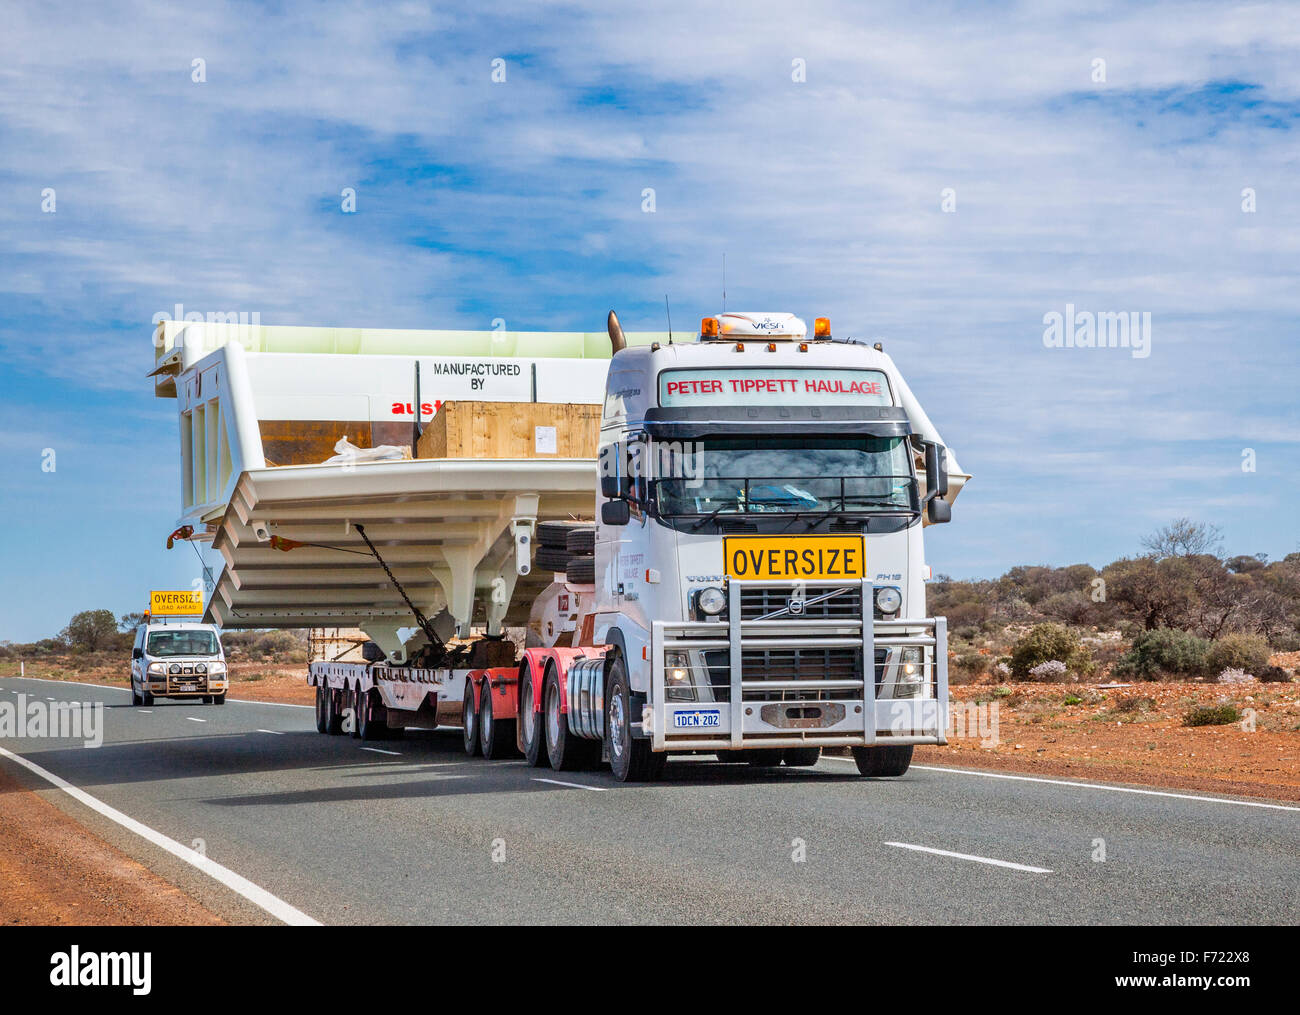 Australia, Western Australia, Mid West, Murchison District, heavy machinery transport on the Great Northern Hwy - Stock Image